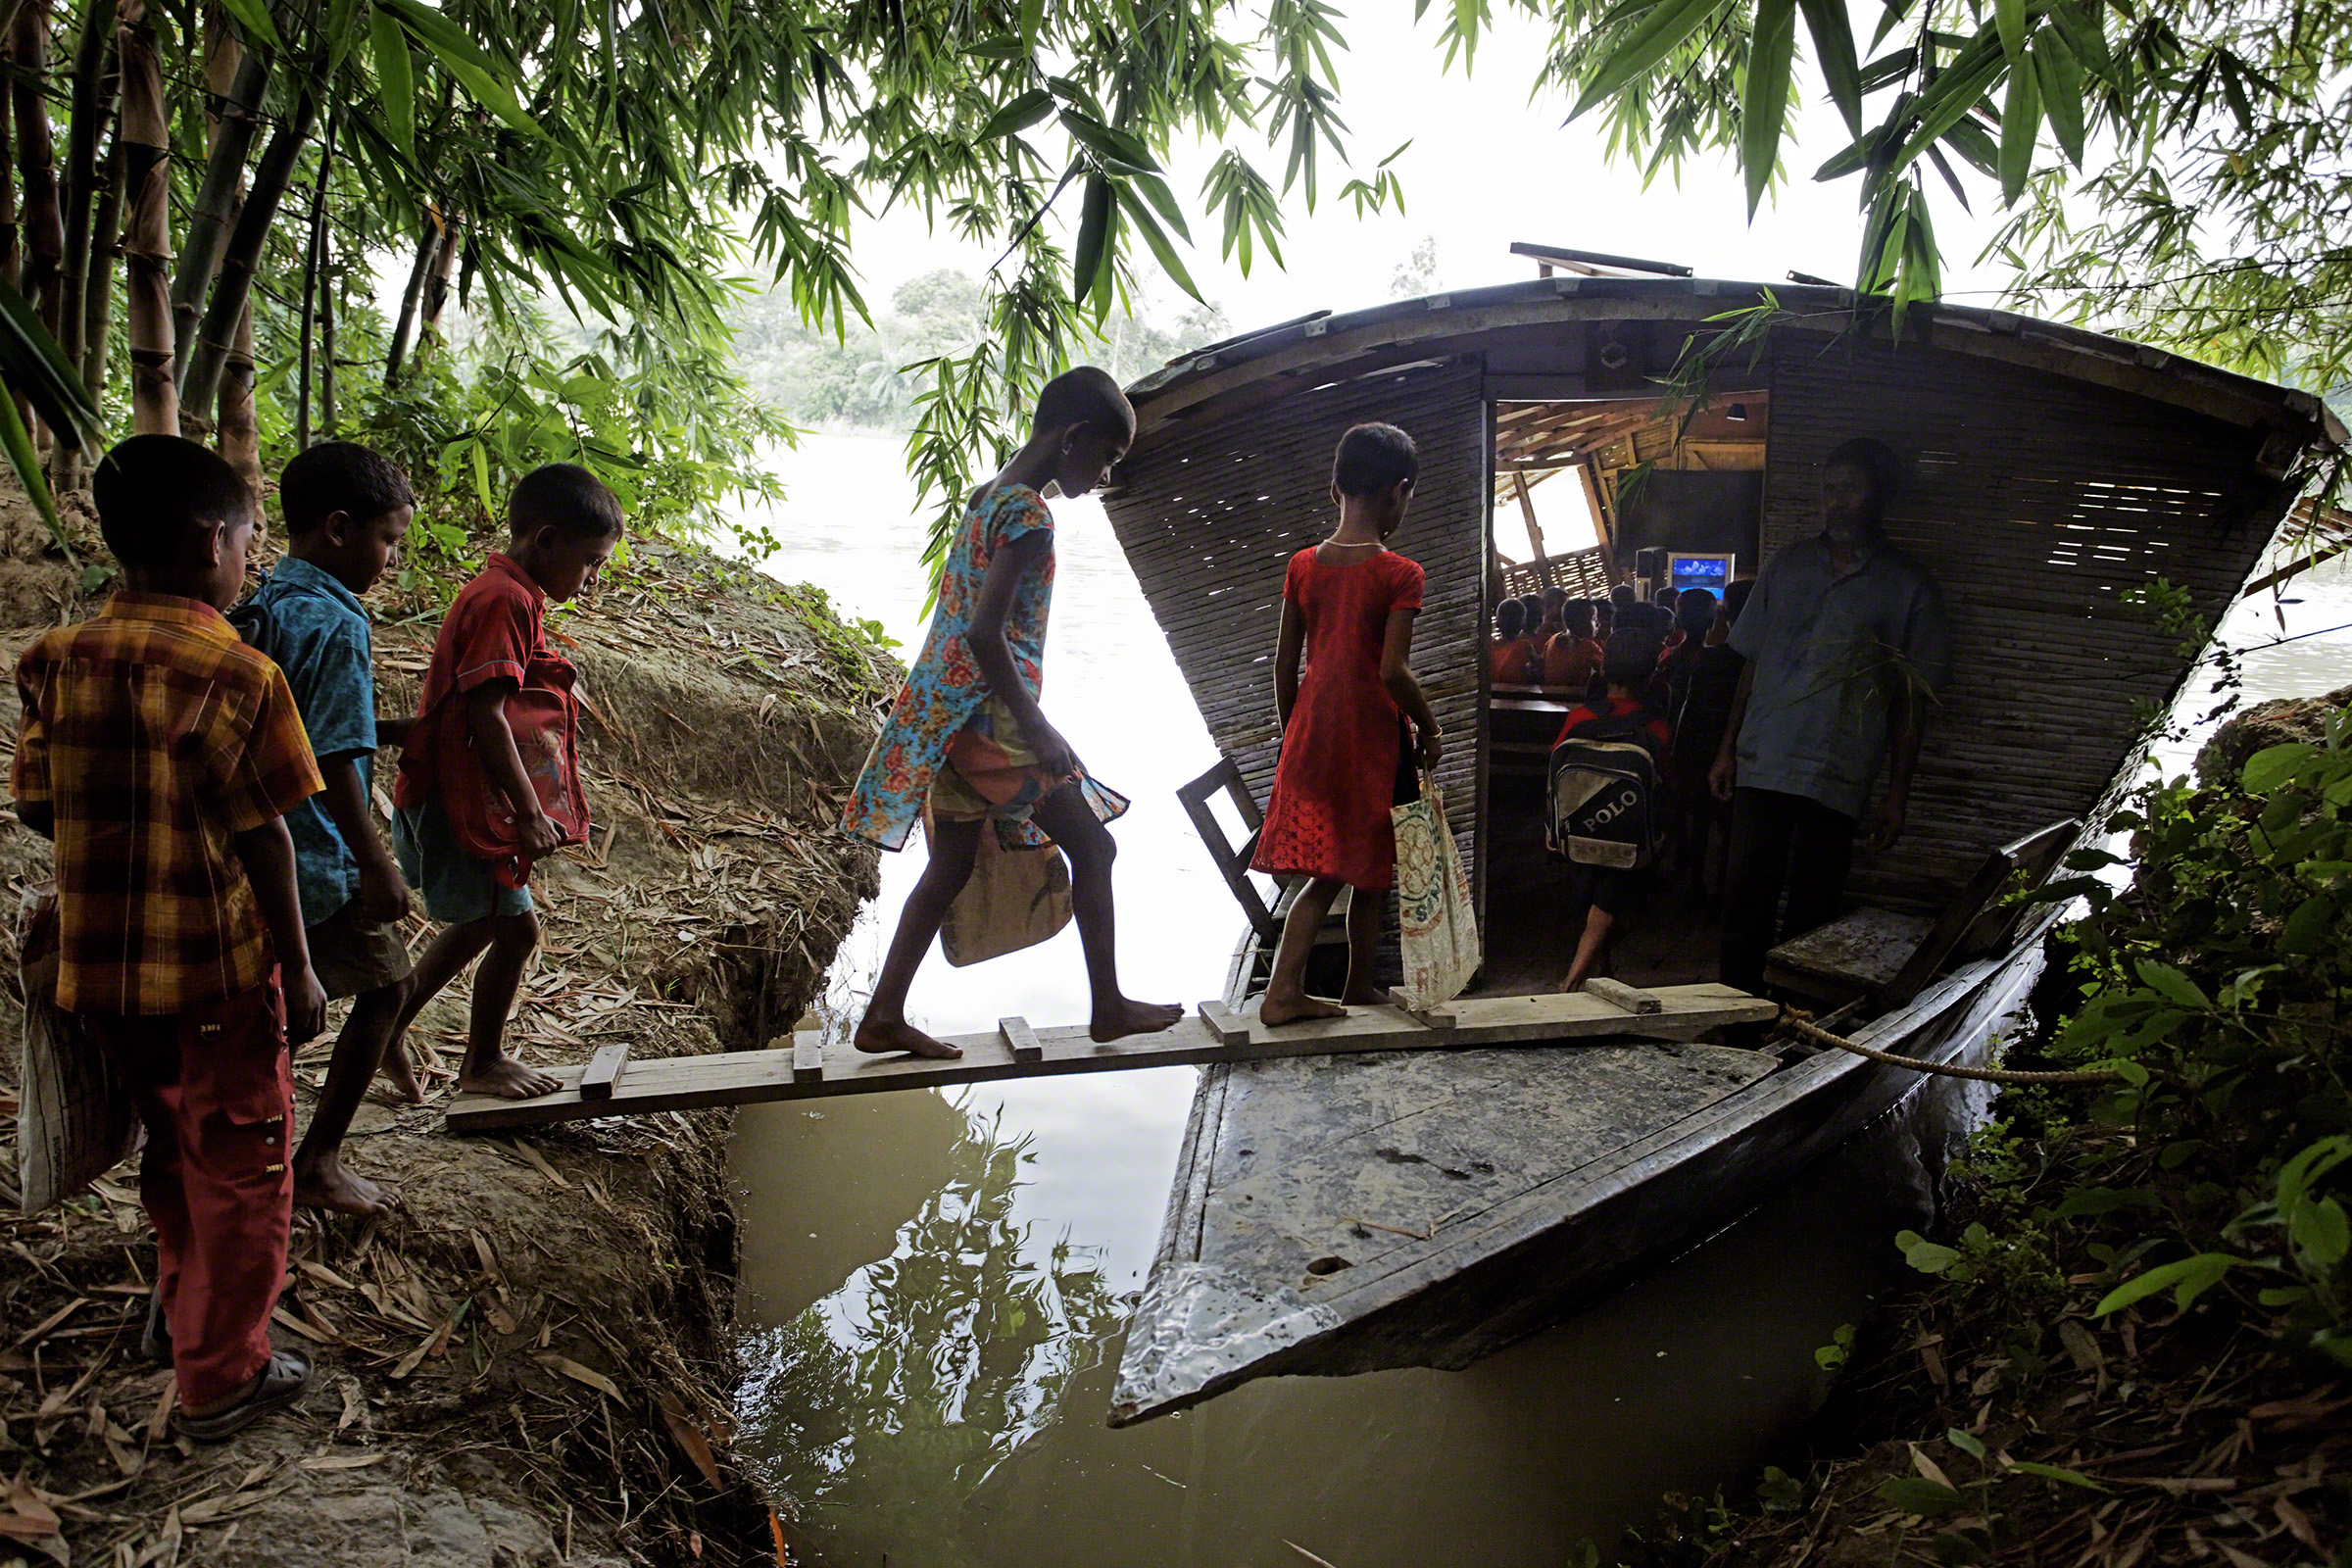 Pabna, Bangladesh, 2010. The nongovernmental organization Shidhulai Swanirvar Sangstha runs a fleet of more than 50 floating schools and libraries in an effort to provide basic education in a severely flood-prone area. Photo: Jonas Bendiksen